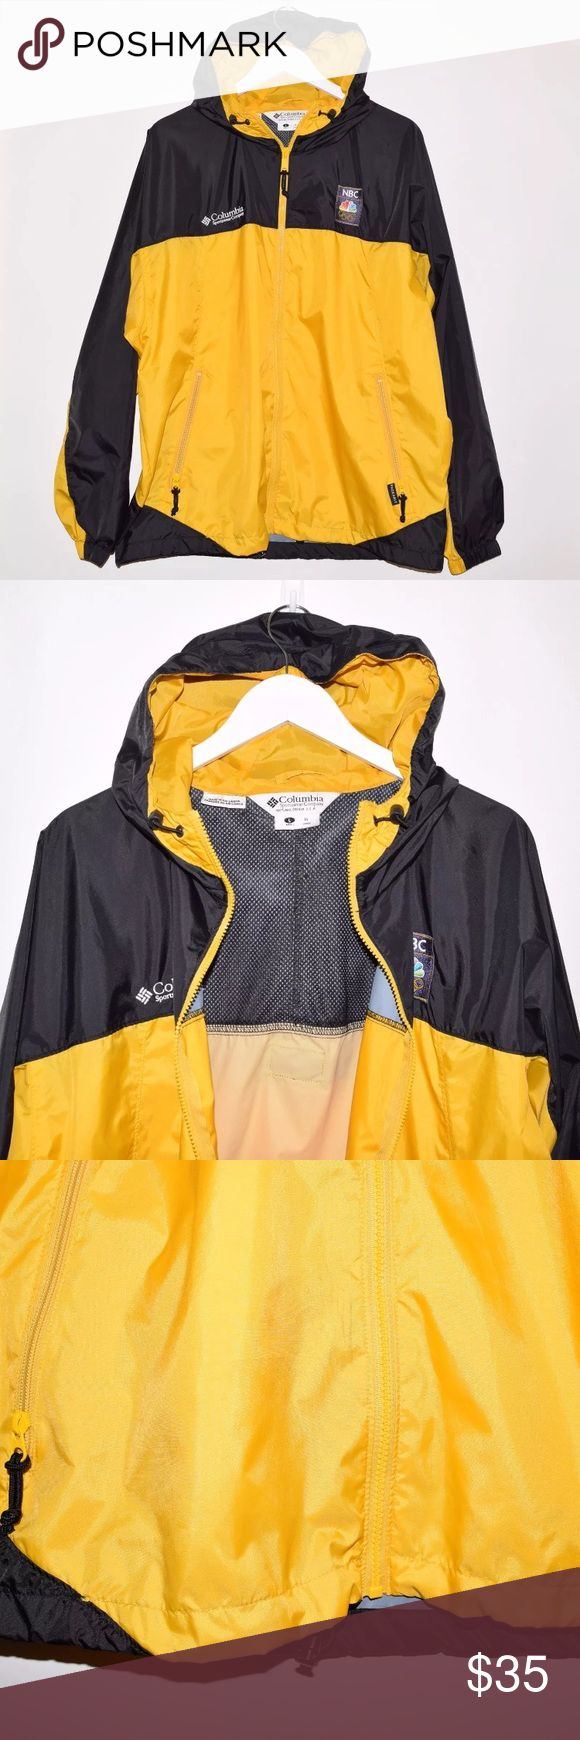 Rare Columbia NBC Olympics Packable Windbreaker Brand: Columbia Item name: Men's NBC Olympics Lightweight Packable Windbreaker Color: Black / Yellow Condition: This is a pre-owned item. Aside from some small blemishes on the front (see photo) it is in great used condition with no stains, rips, holes, etc. Comes from a smoke free household. Size: Large Measurements: Pit to Pit - 28 inches Neckline to bottom - 28 inches Columbia Jackets & Coats Windbreakers